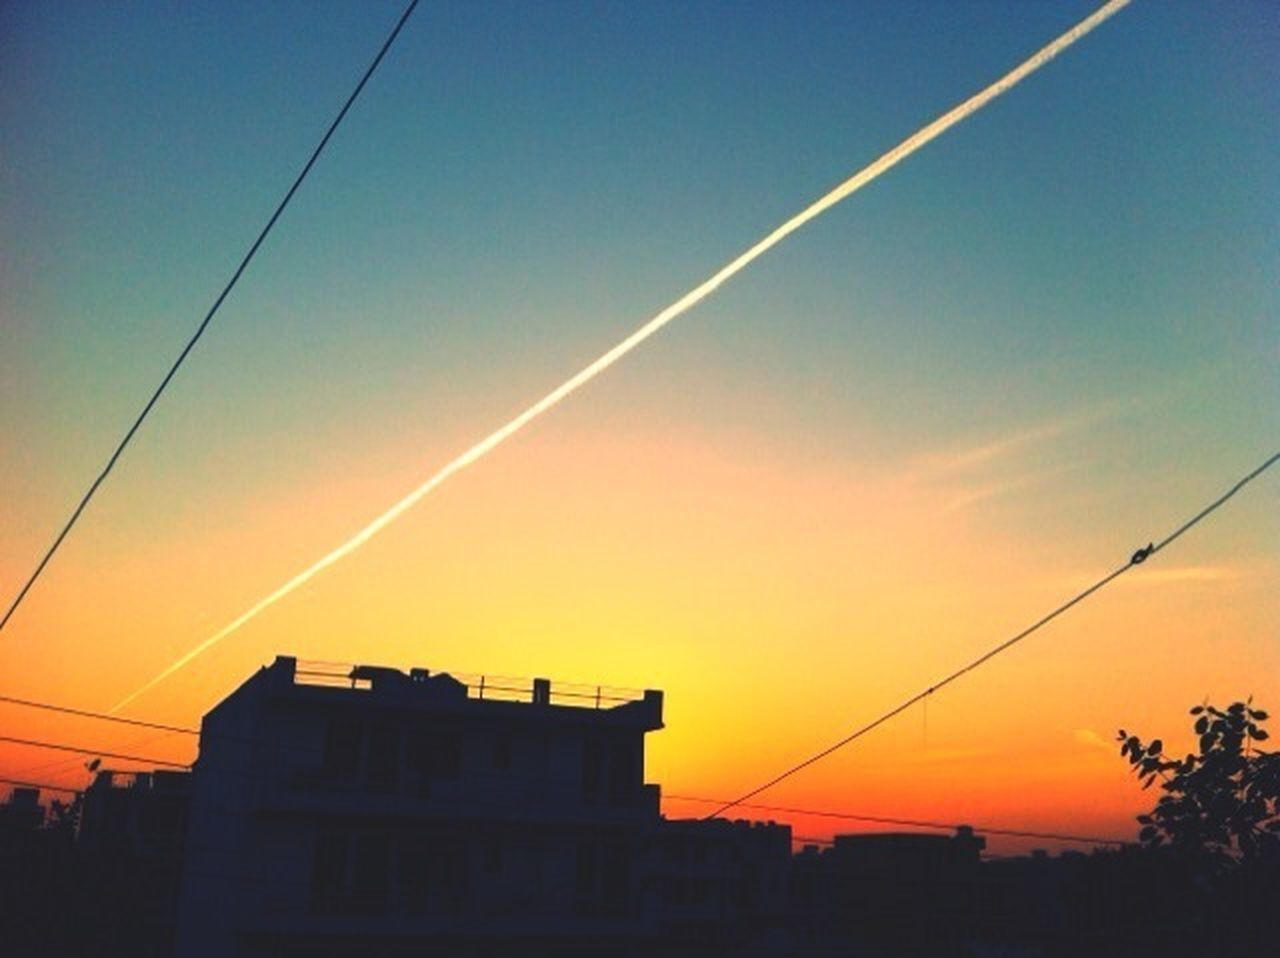 sunset, cable, no people, silhouette, outdoors, built structure, nature, architecture, building exterior, sky, contrail, vapor trail, clear sky, beauty in nature, day